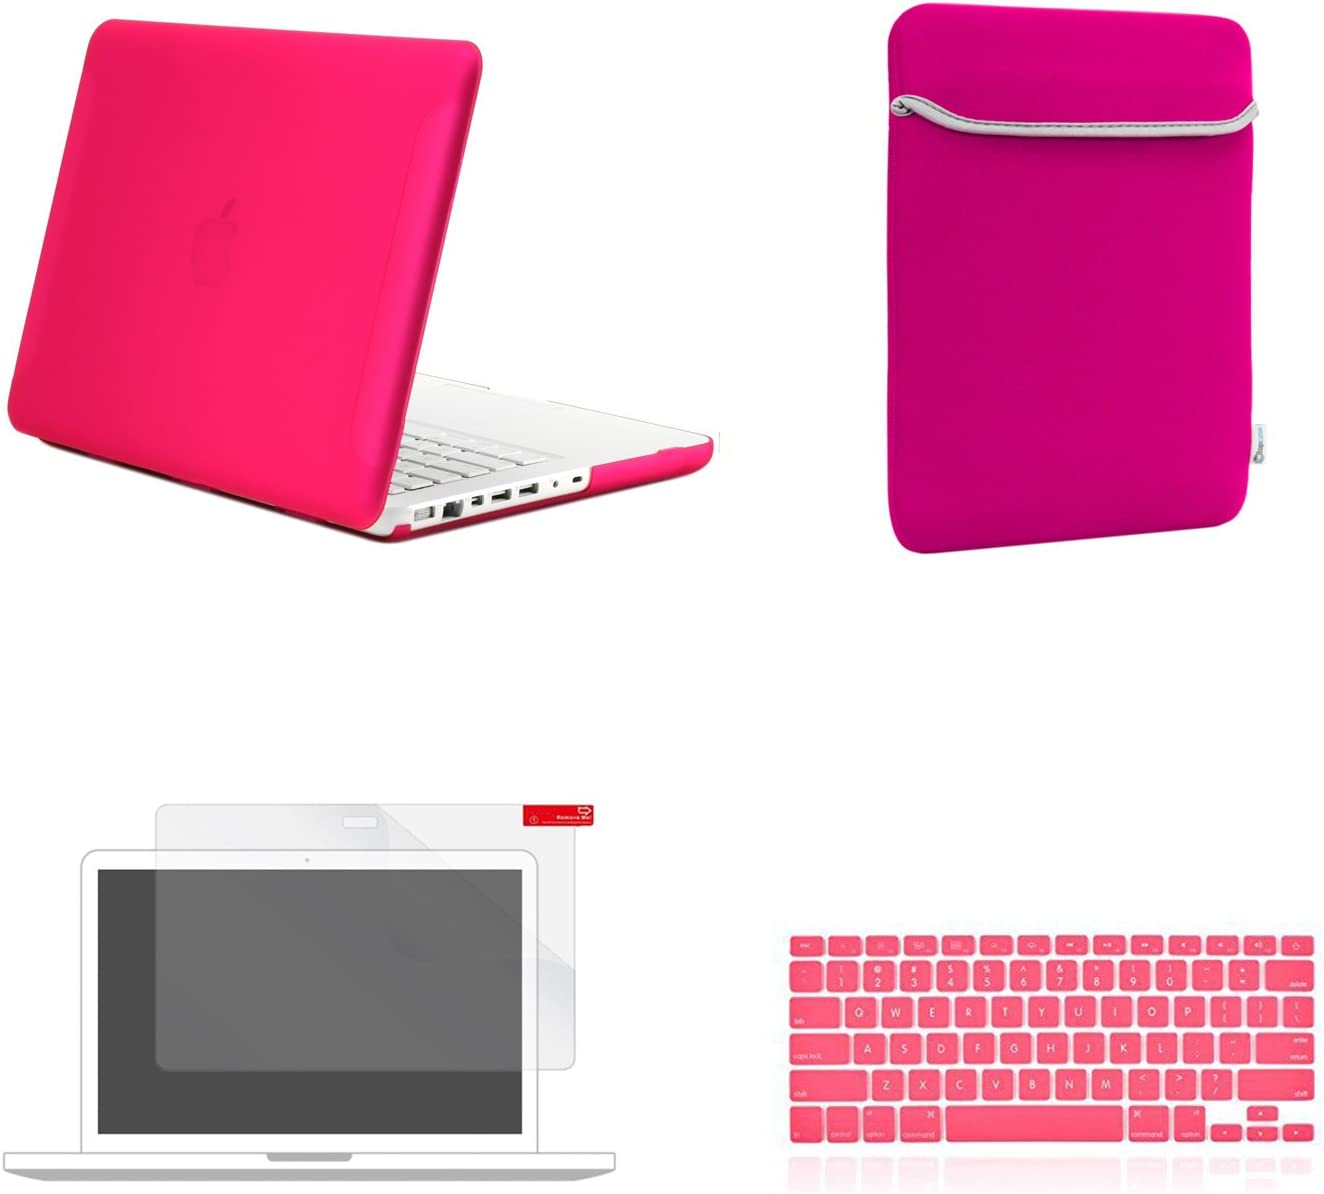 TOP CASE - 4 in 1 Essential Bundle Rubberized Hard Case + Sleeve Bag + Silicone Keyboard Cover + Screen Protector Compatible MacBook White 13